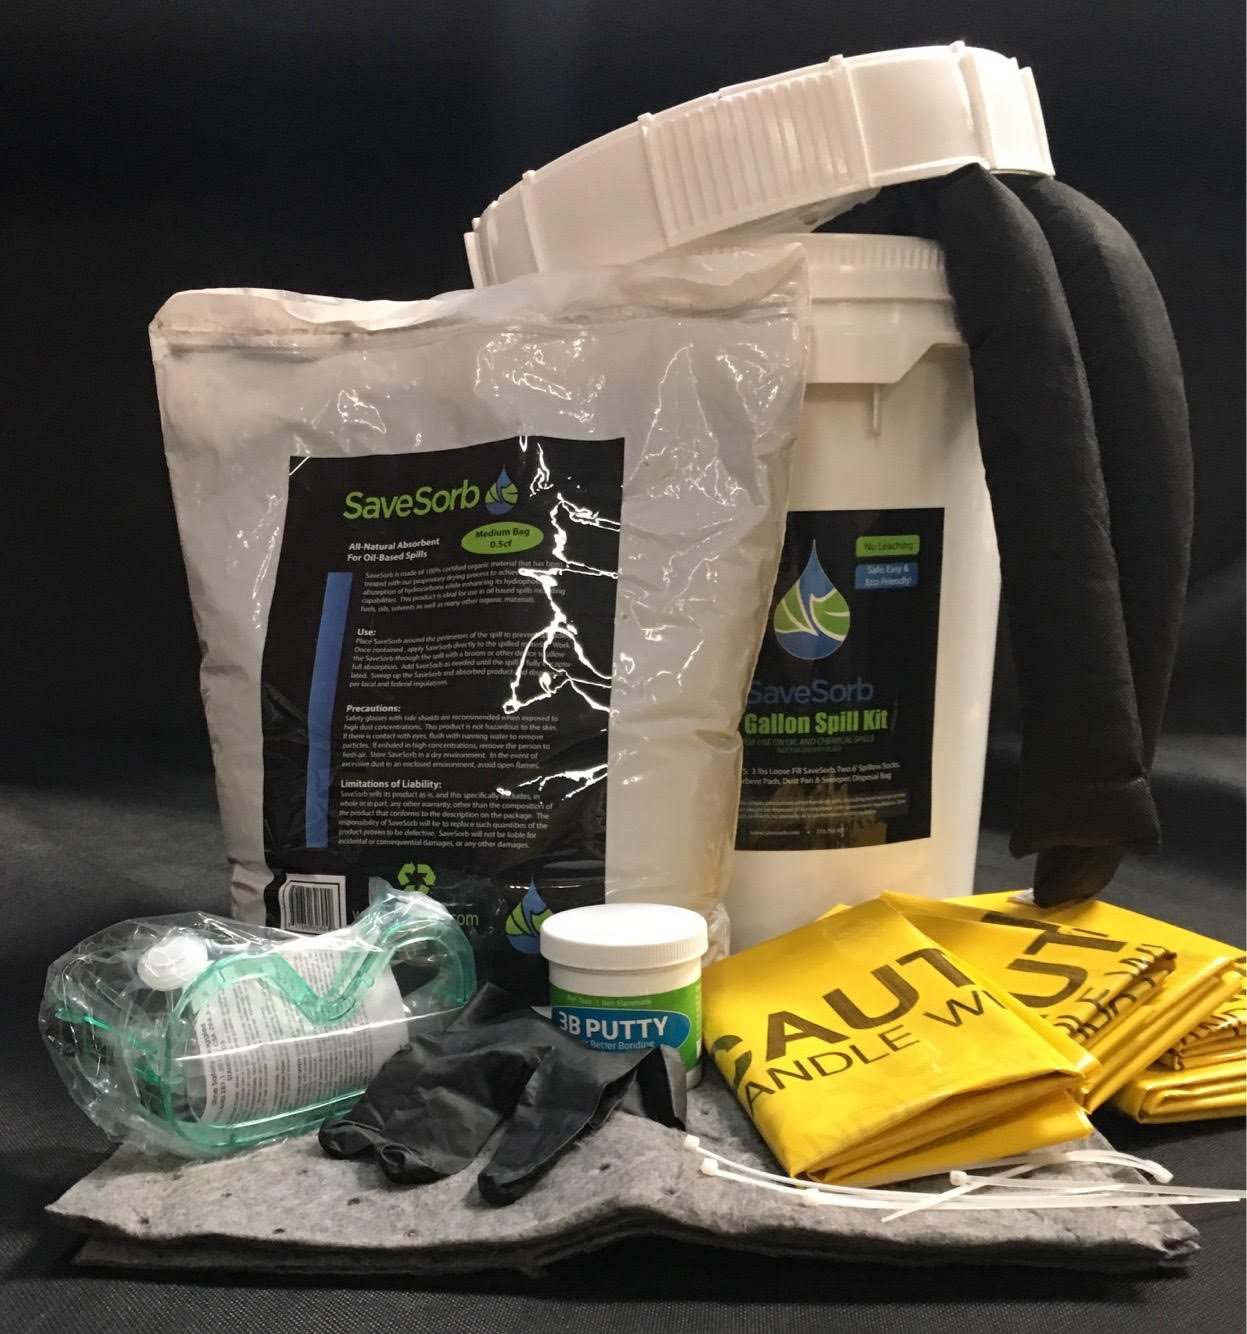 ABZORBITALL Total Spill Solution - 5 Gallon Spill Kit. 100% Biodegradable, Peat Moss Cleanup Solution for industrial and household waste, pet litter, hazardous materials, and other hydrocarbons